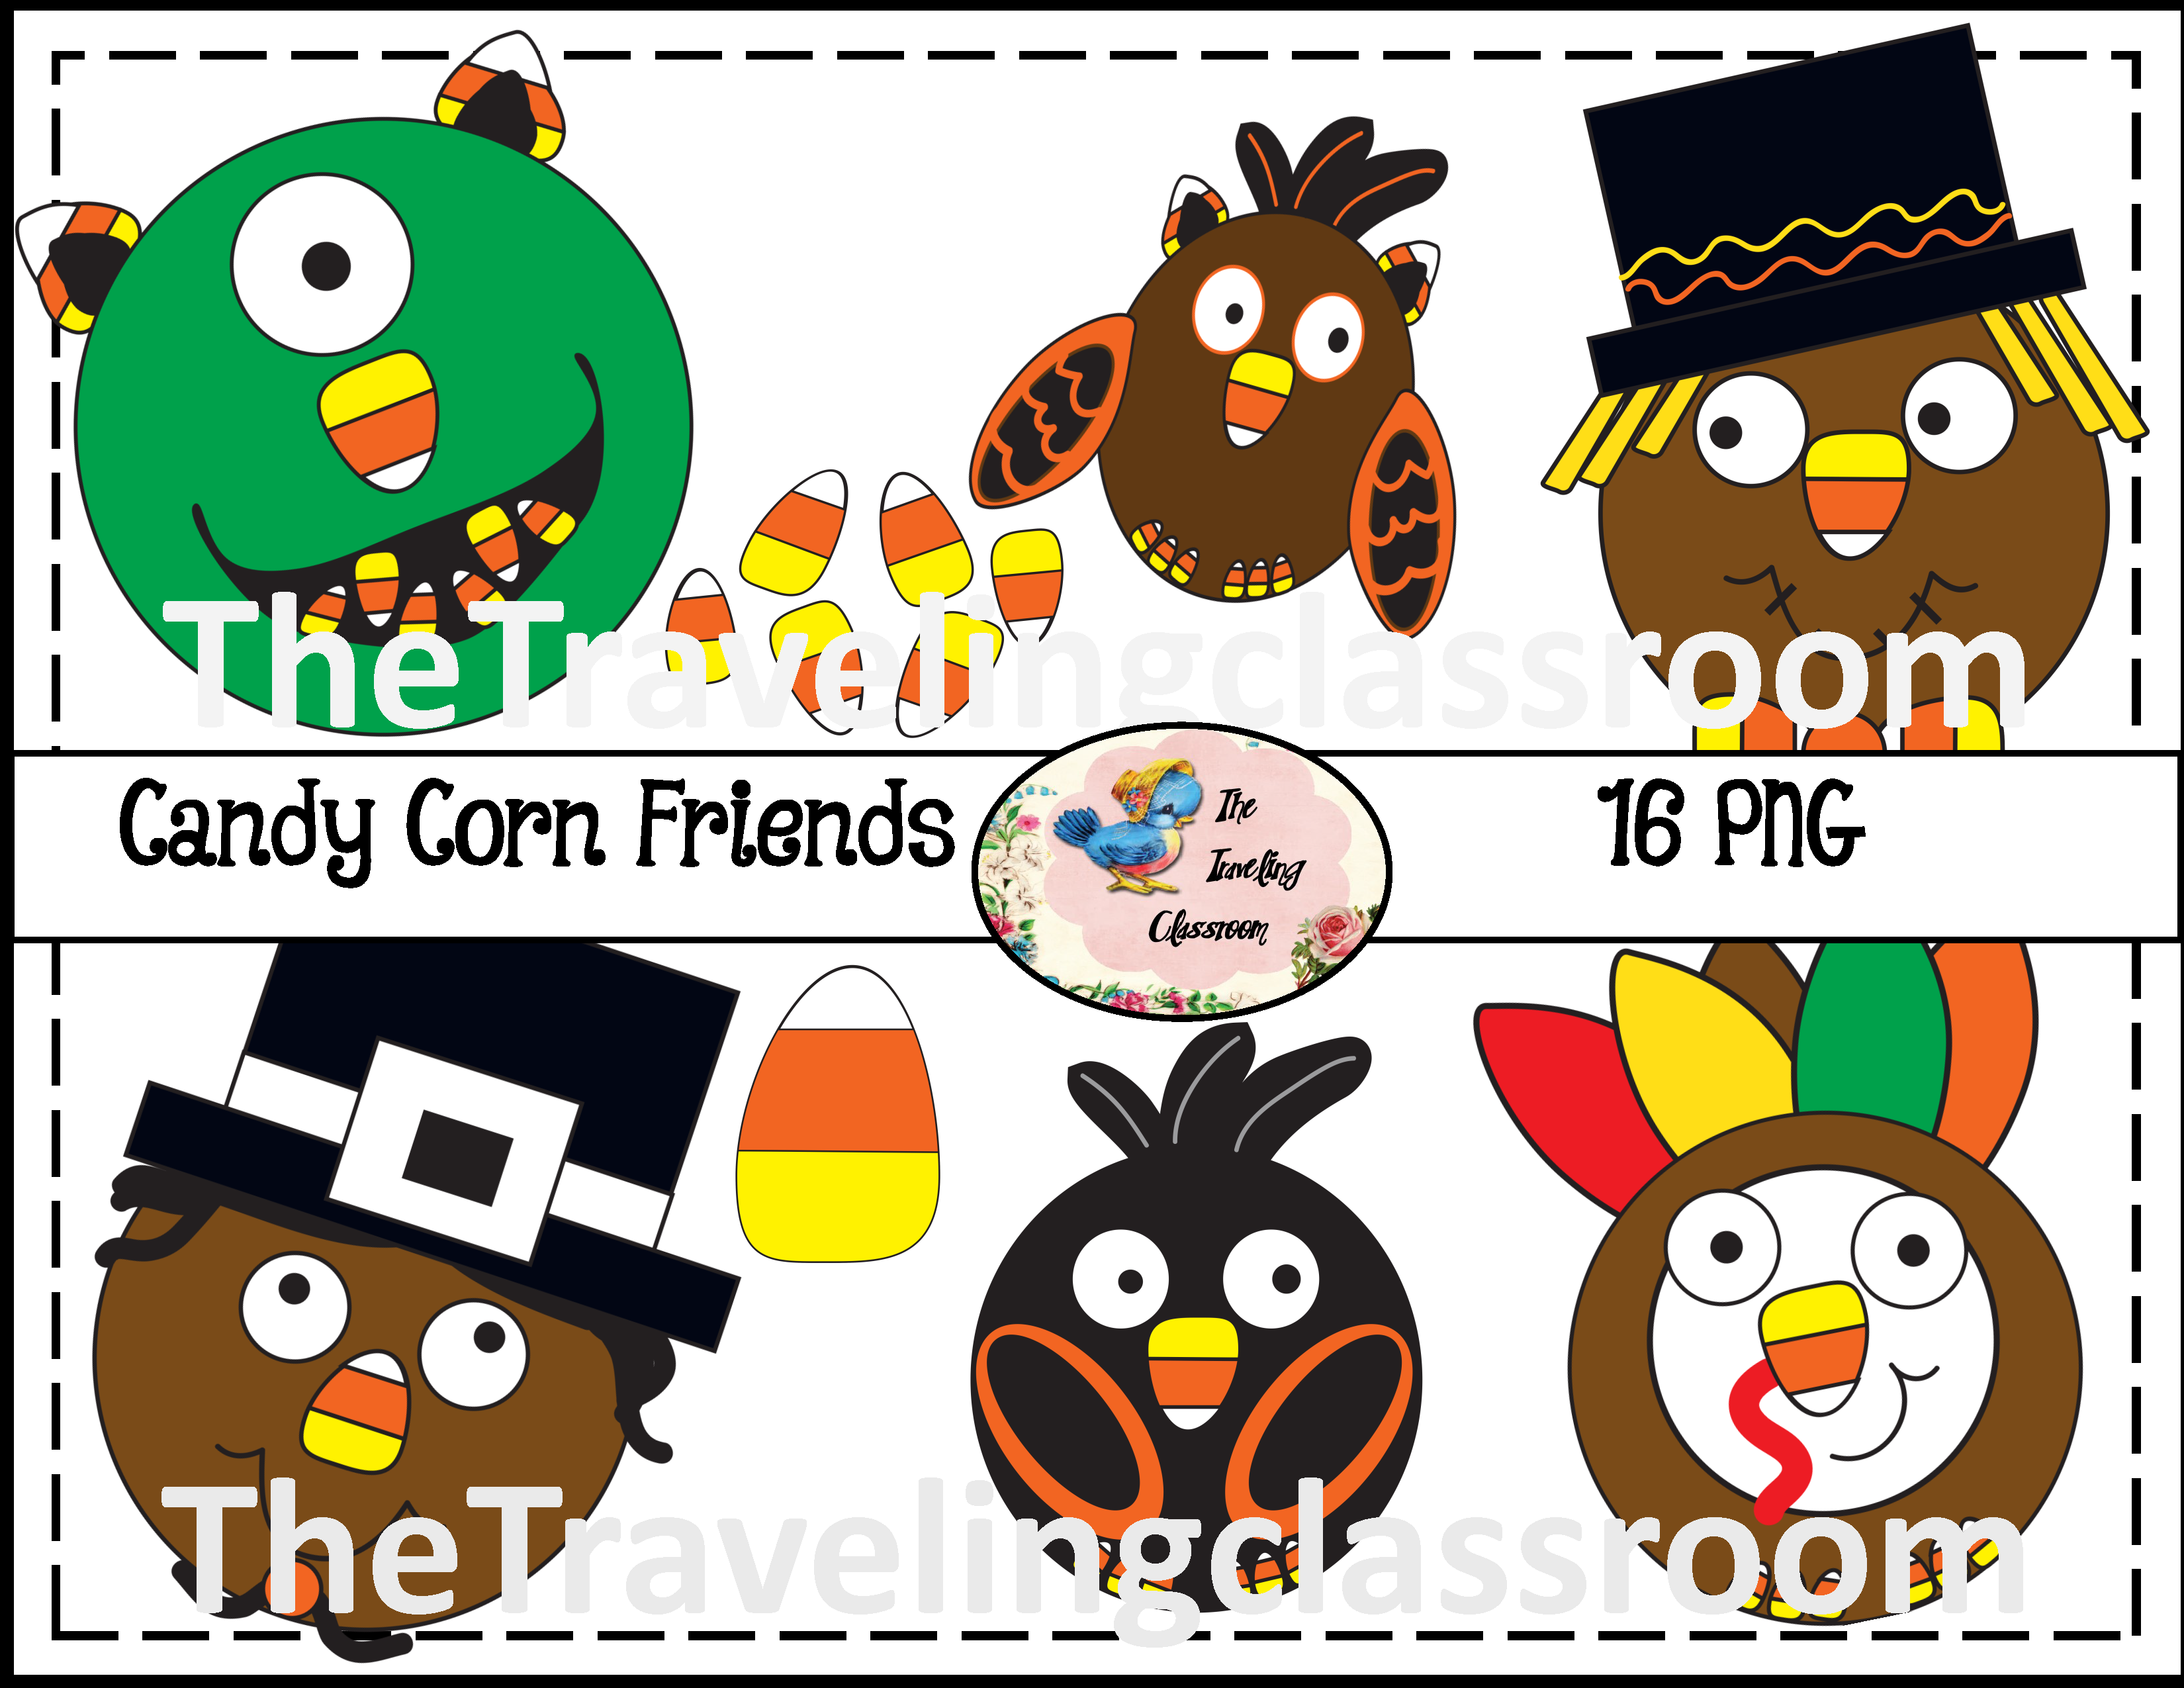 Cute Candy Corn Friends clip art! This includes 16 PNG